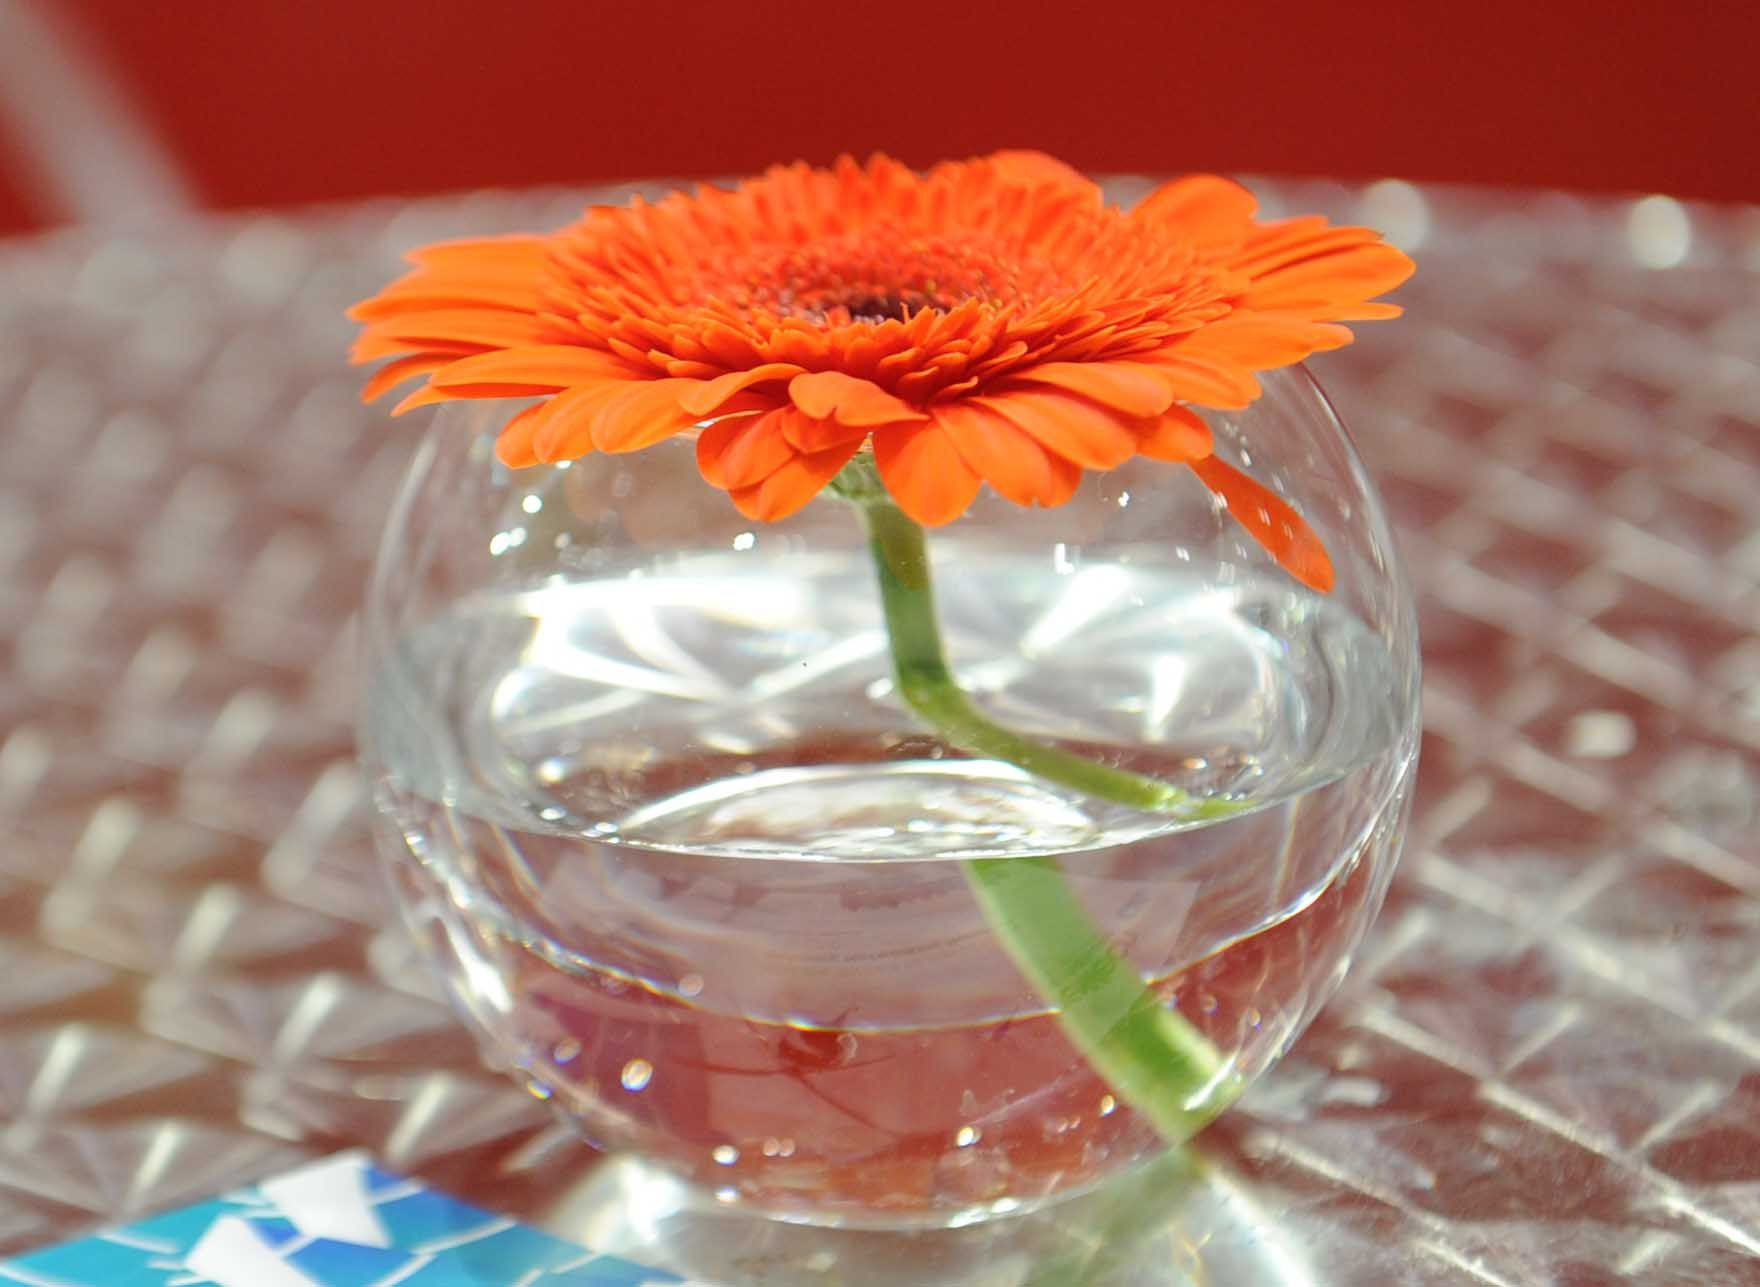 french country decor vases of orange glass vase pics 47 od single orange gerbera in gfb within orange glass vase pics 47 od single orange gerbera in gfb celebraciones of orange glass vase